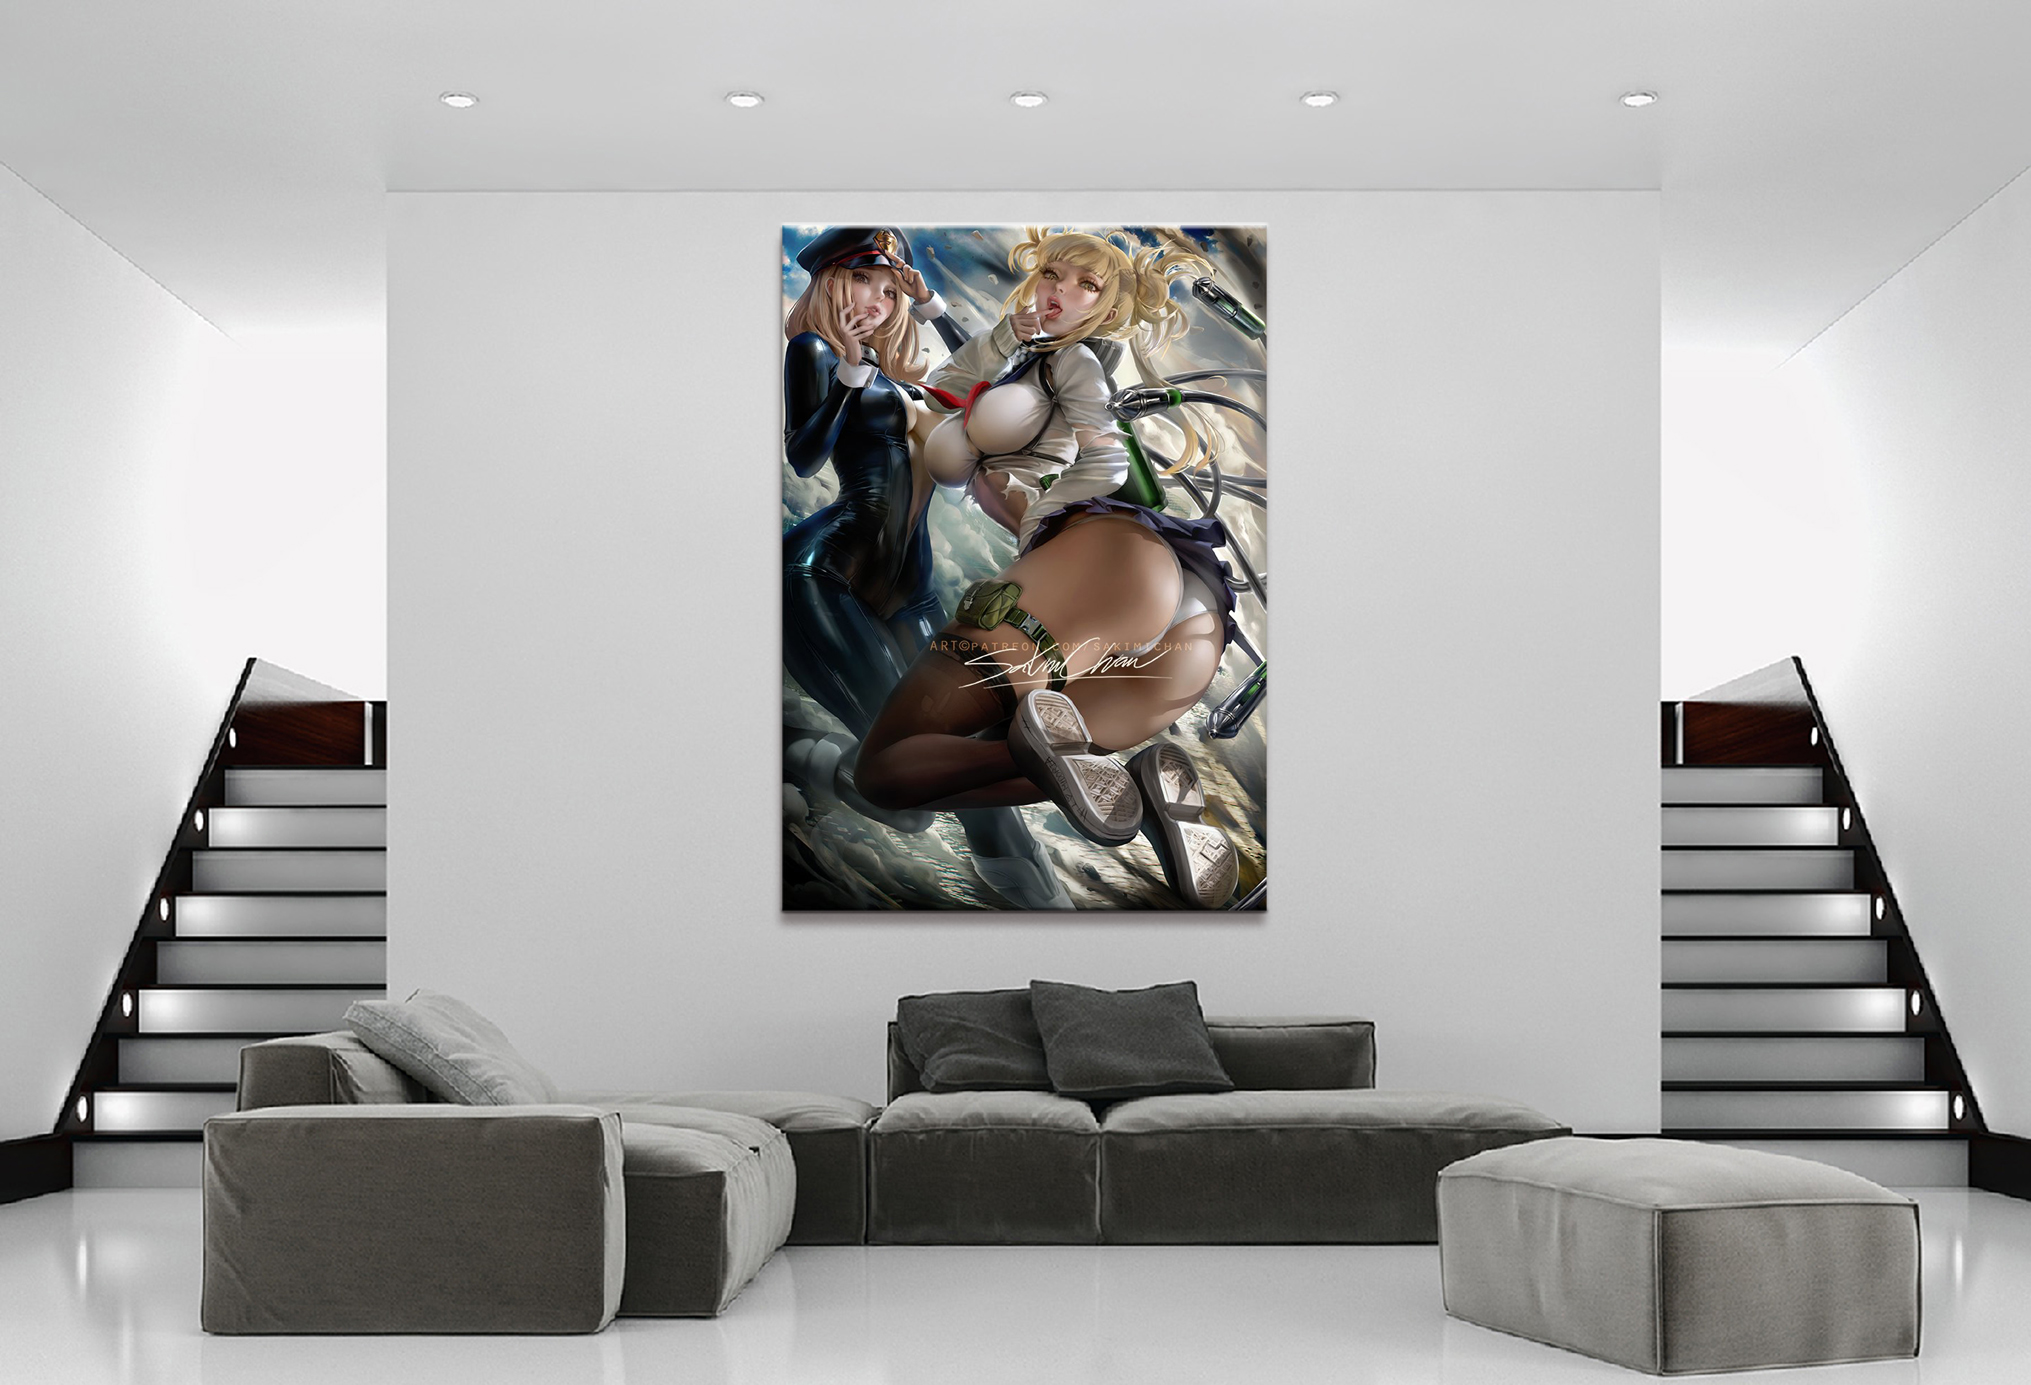 Home Decor Canvas 1 Piece Cute Sexy Anime My Hero Academia Himiko Toga Posters and Prints Painting Home Decoration Wall Pictures